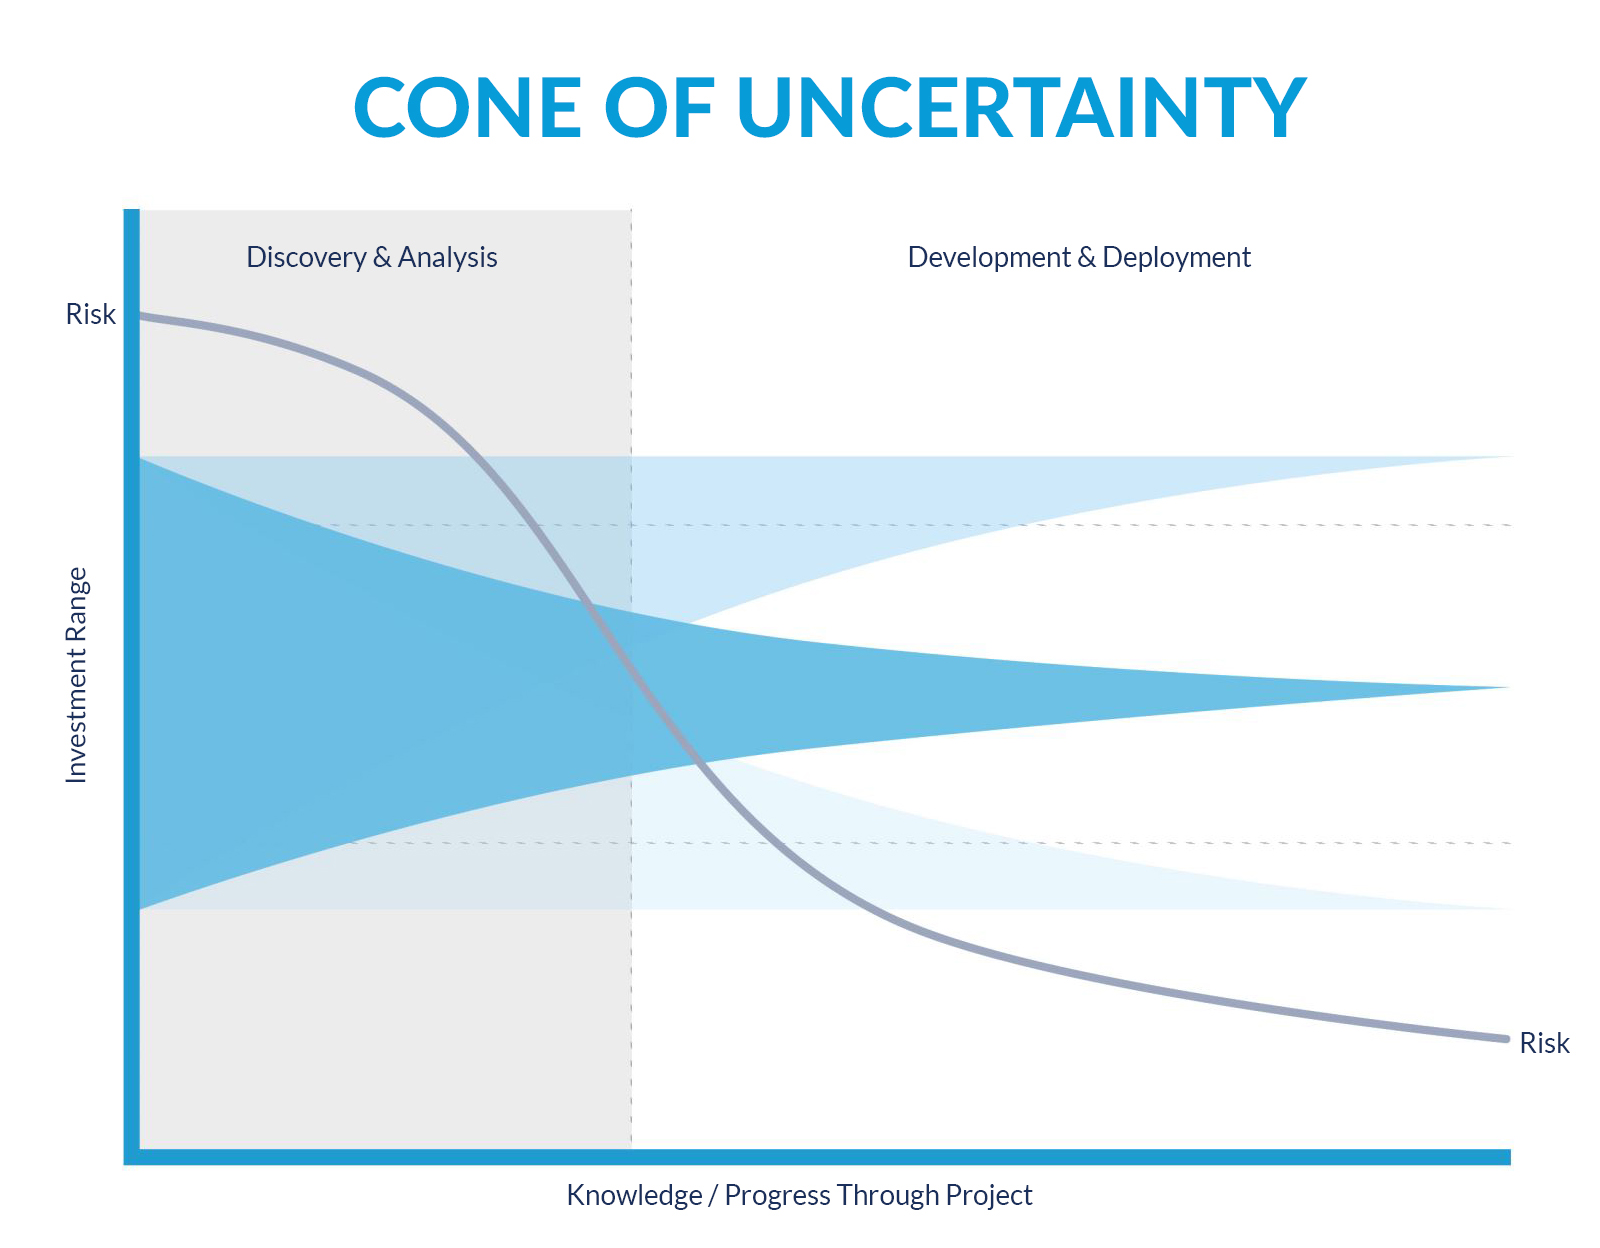 Cone of Uncertainty Graphic